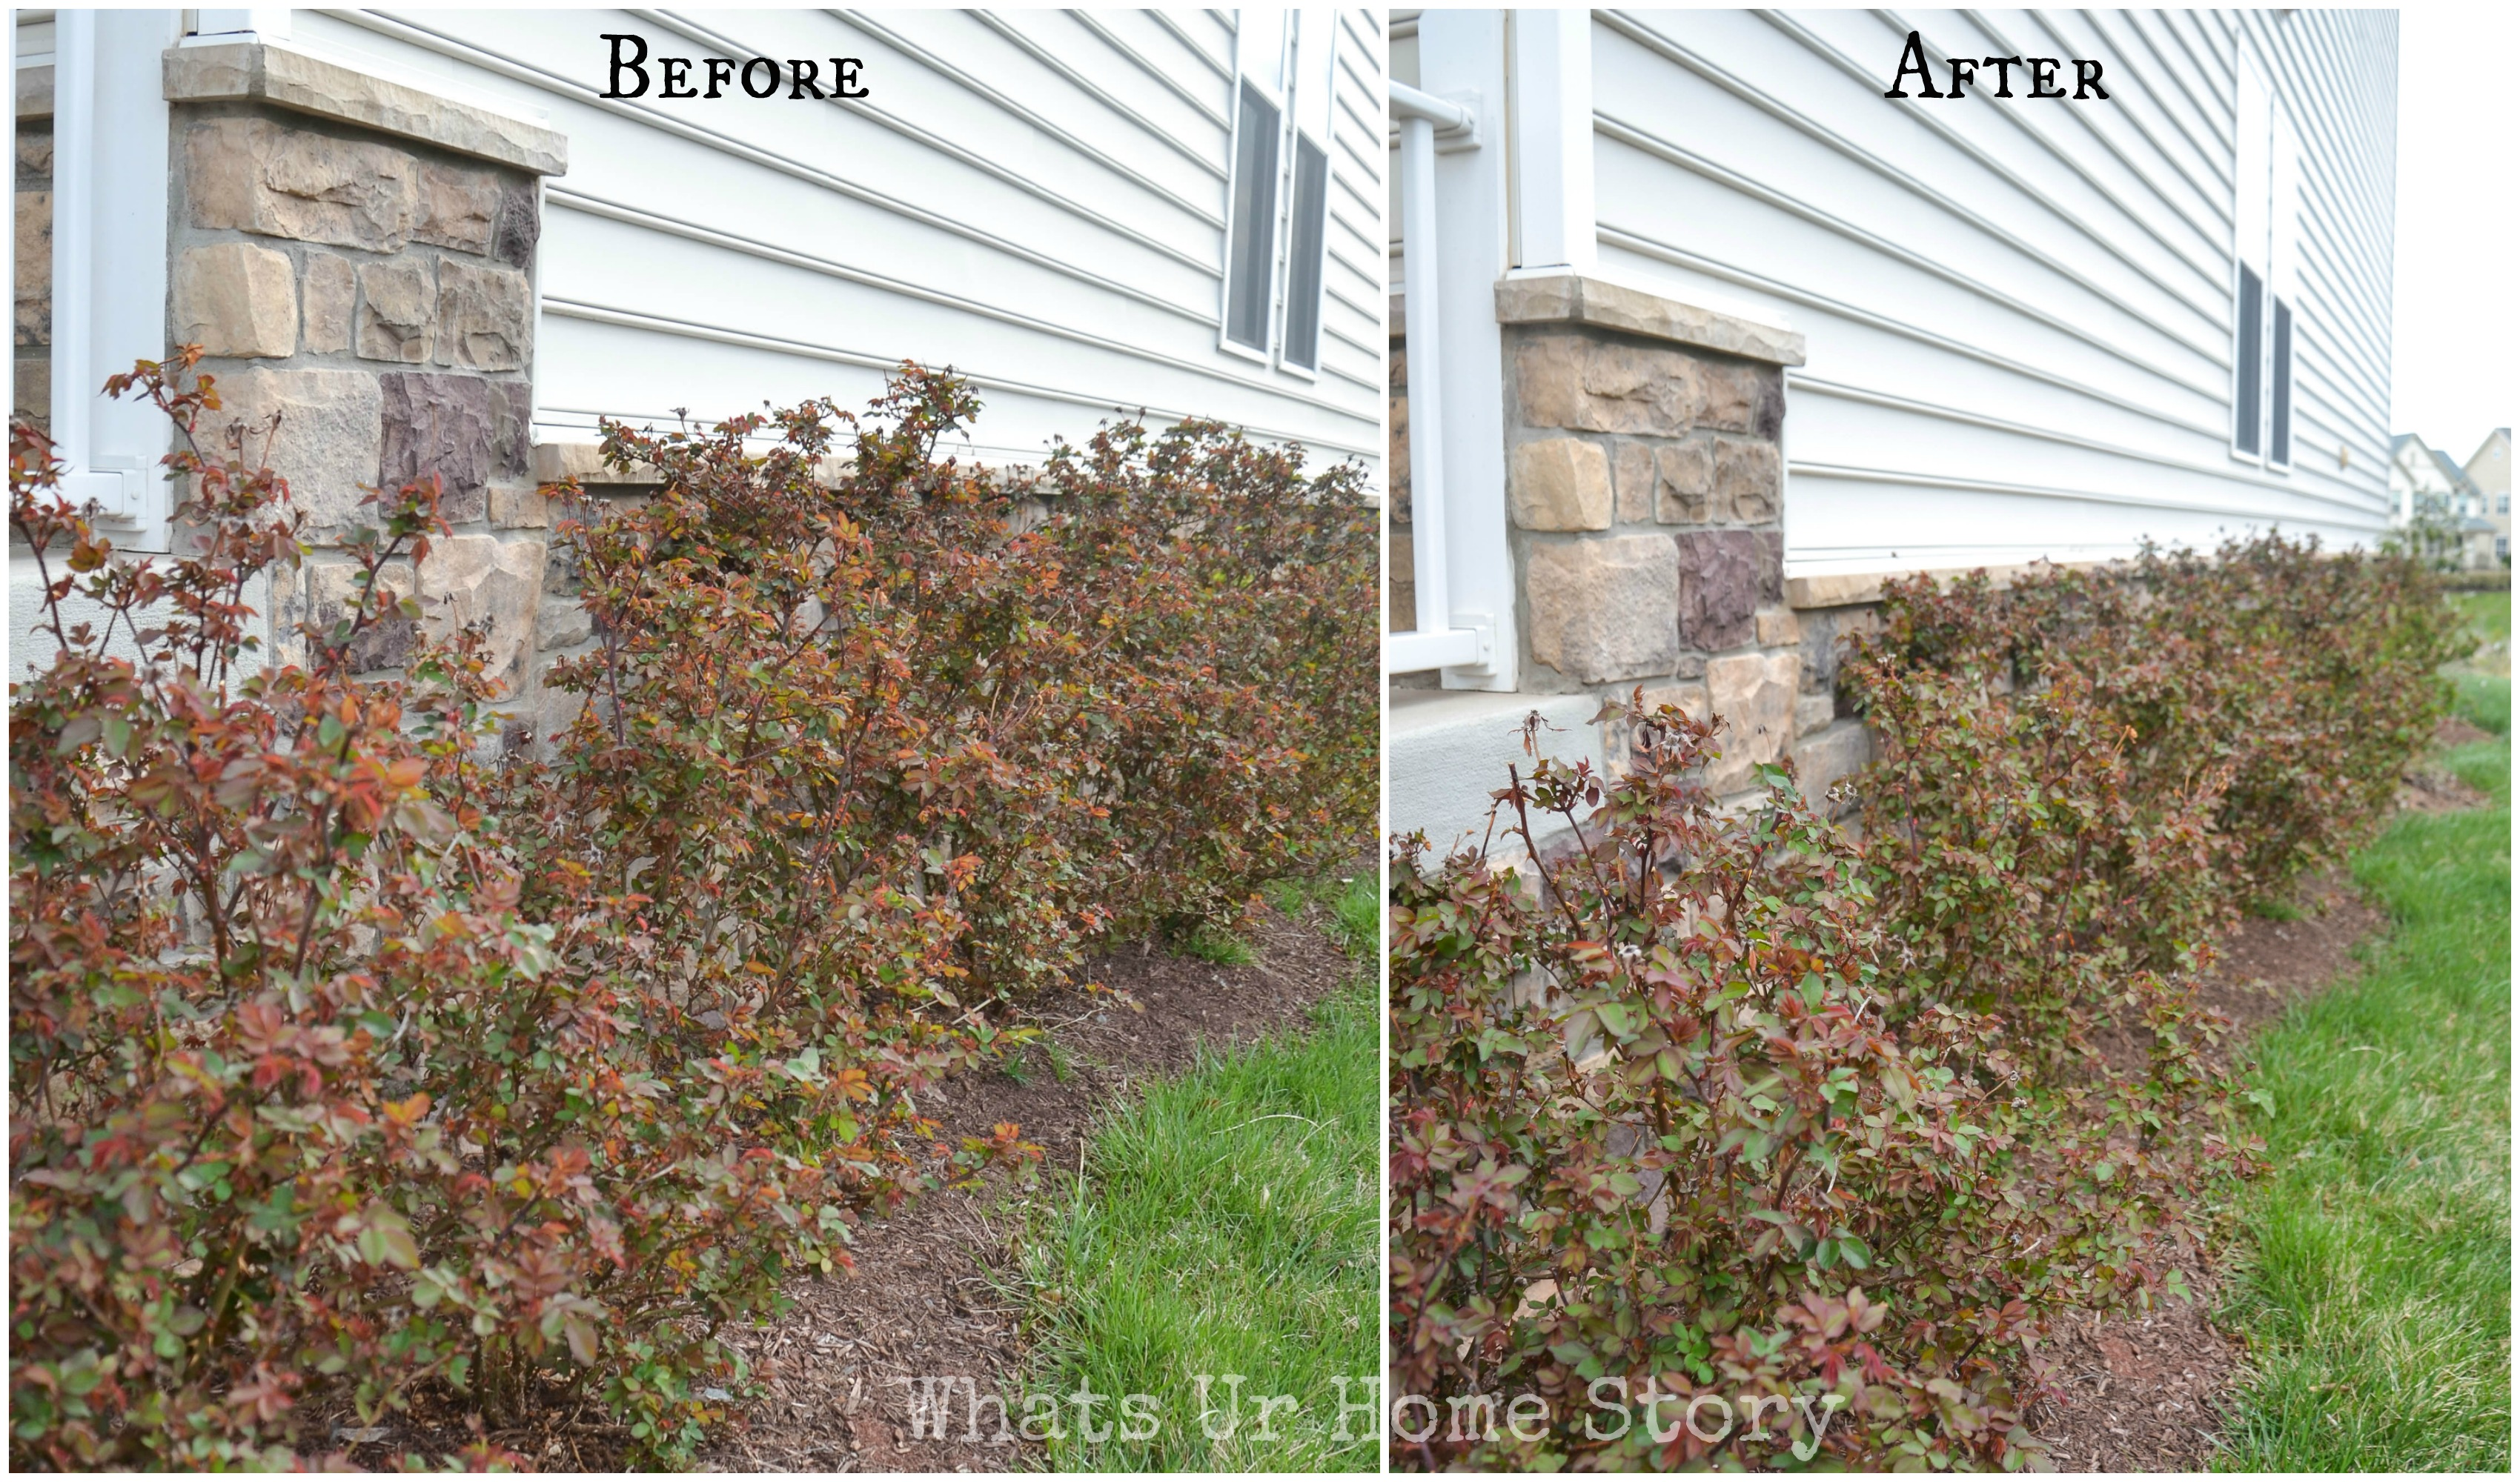 How to prune a rose bush - How To Prune Knockout Roses